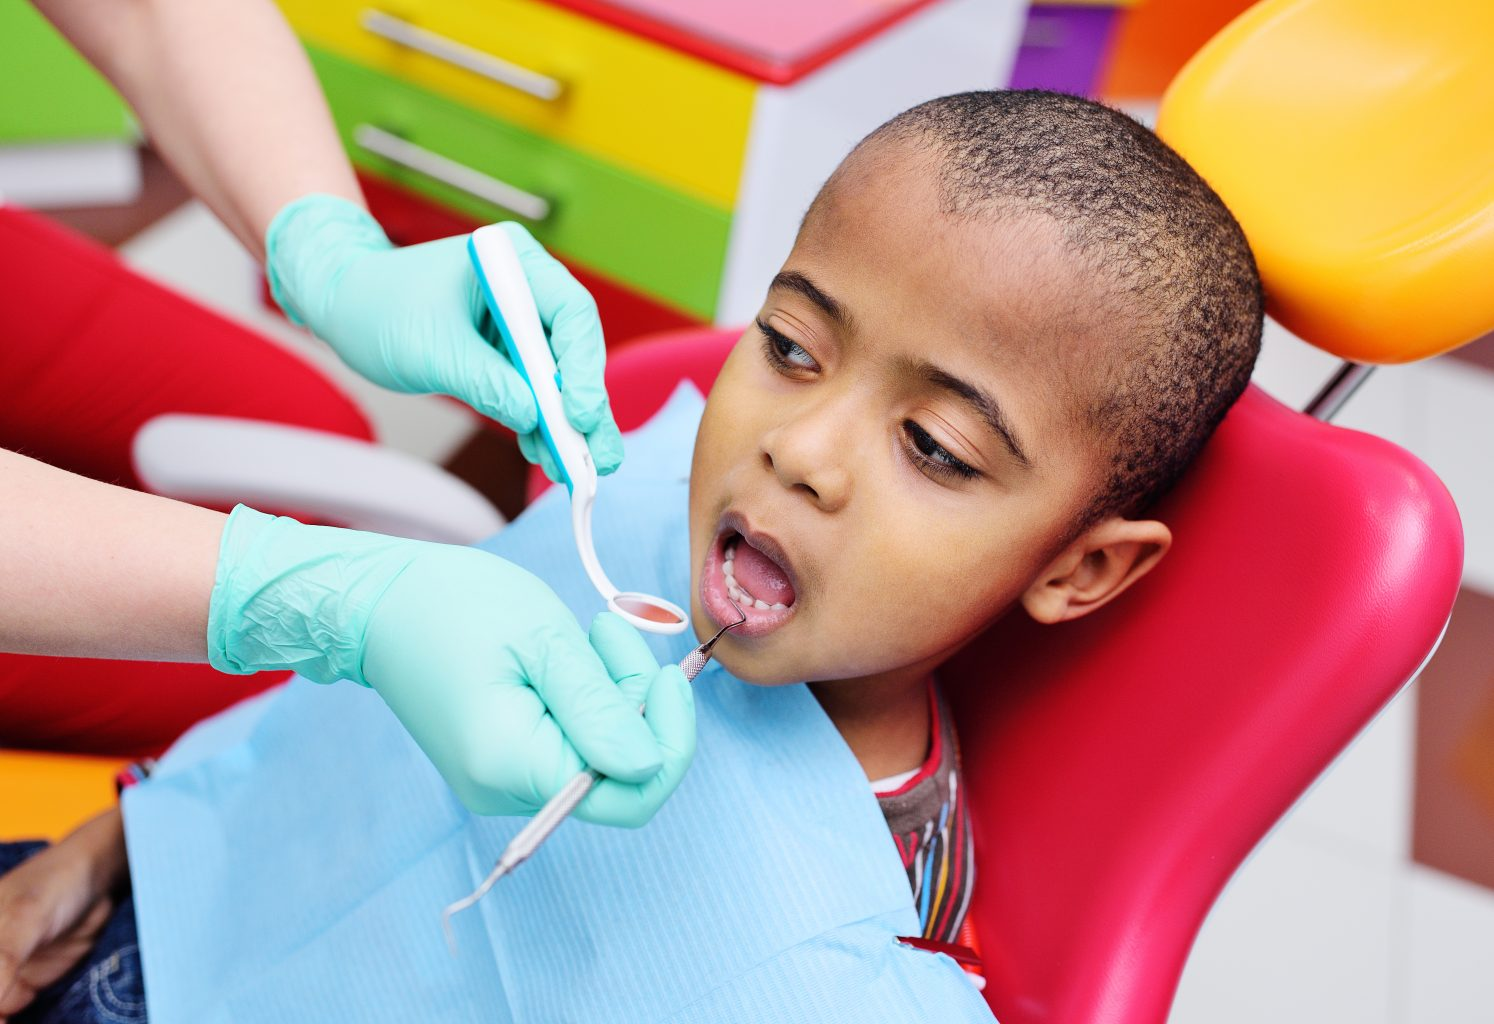 Cute Black Baby Boy African American Smiling Sitting In The Dental Chair